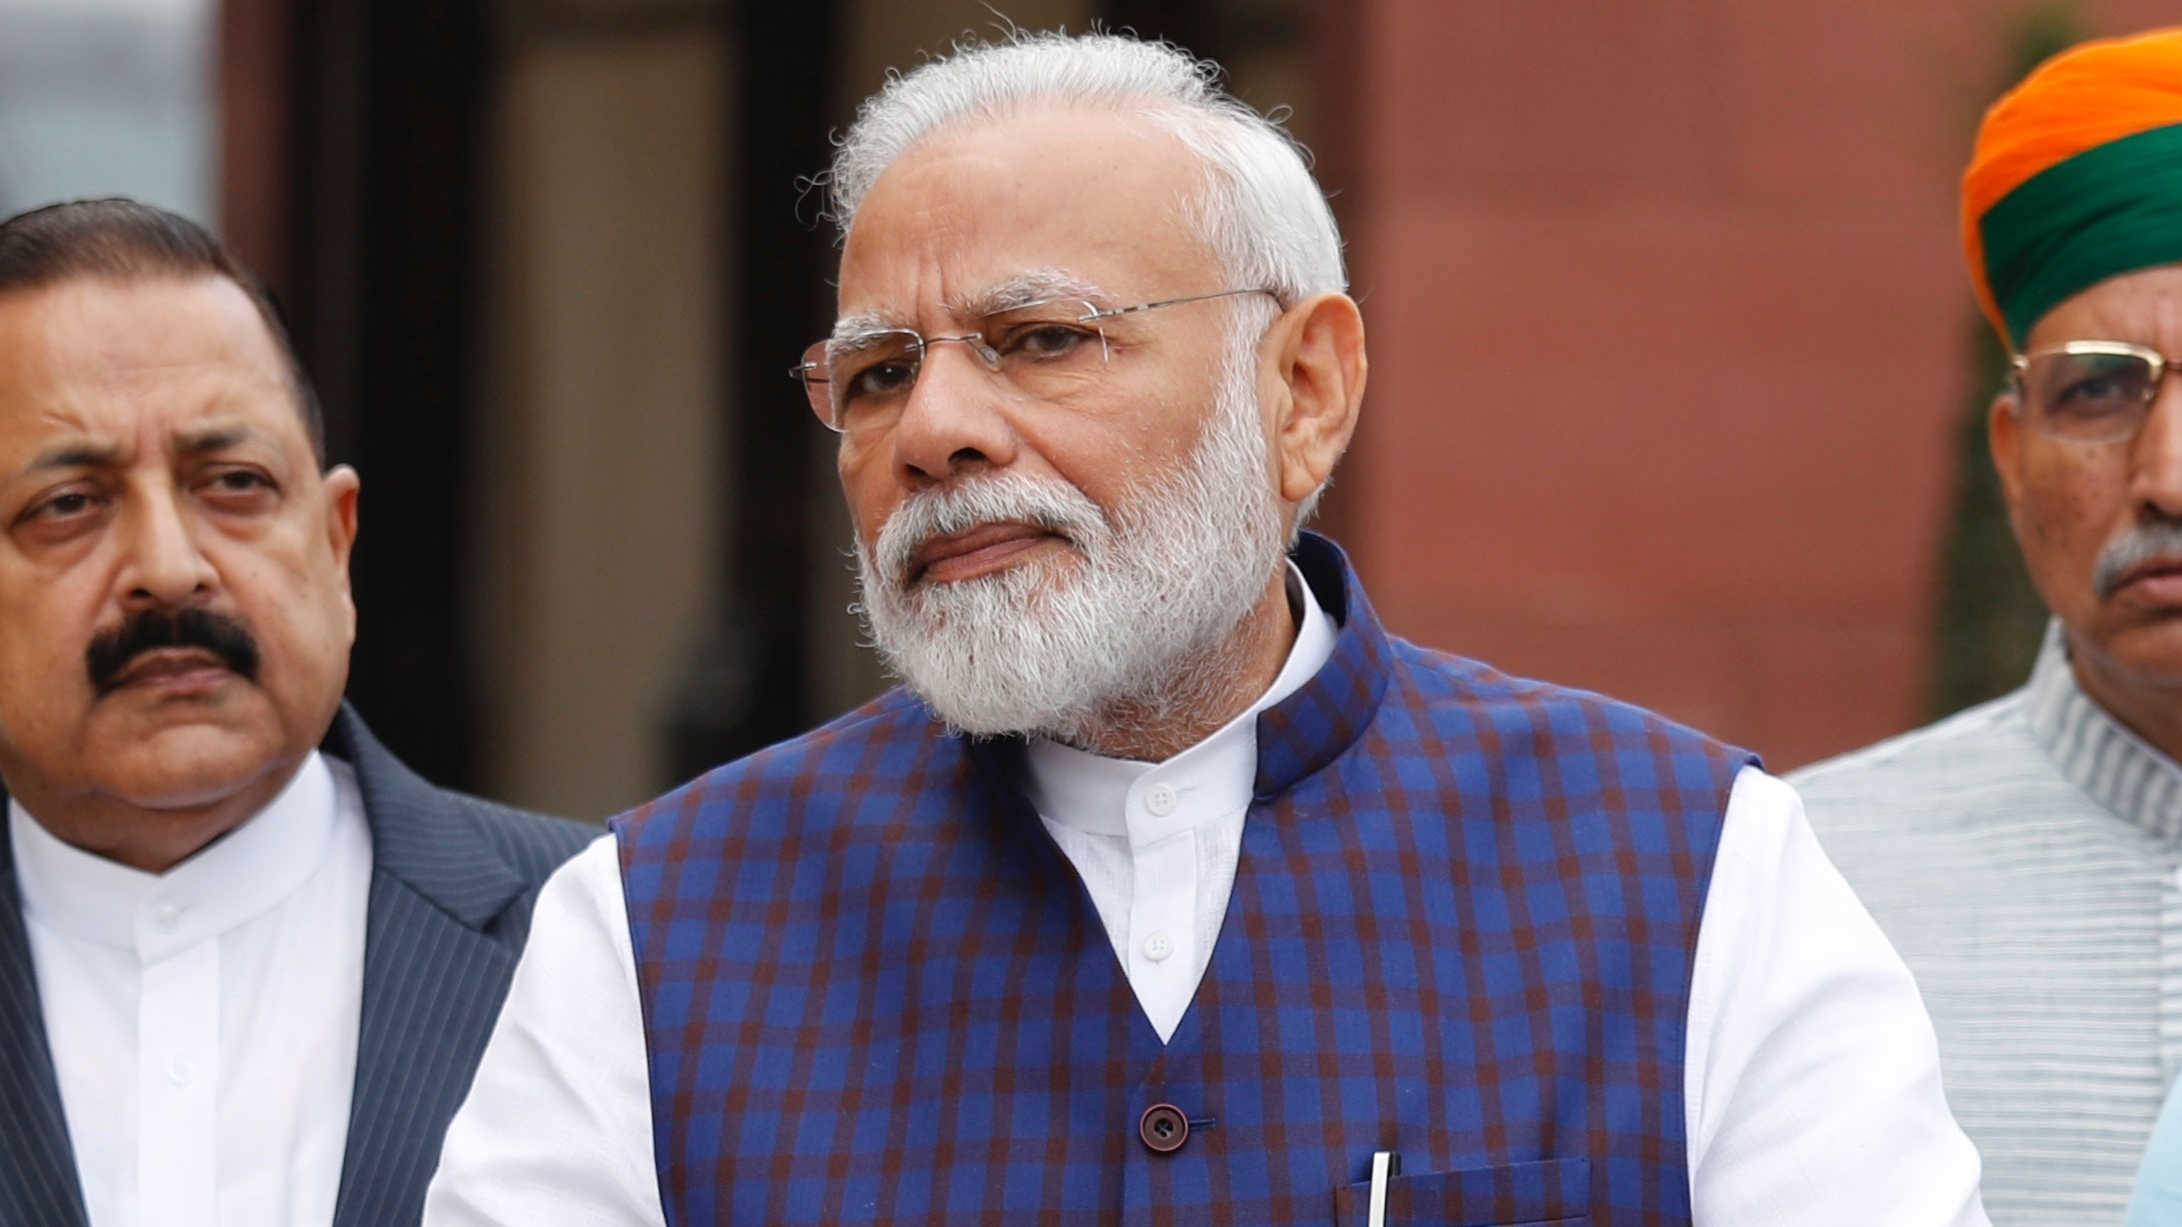 It is not surprising that Mr Modi would choose to play King Canute